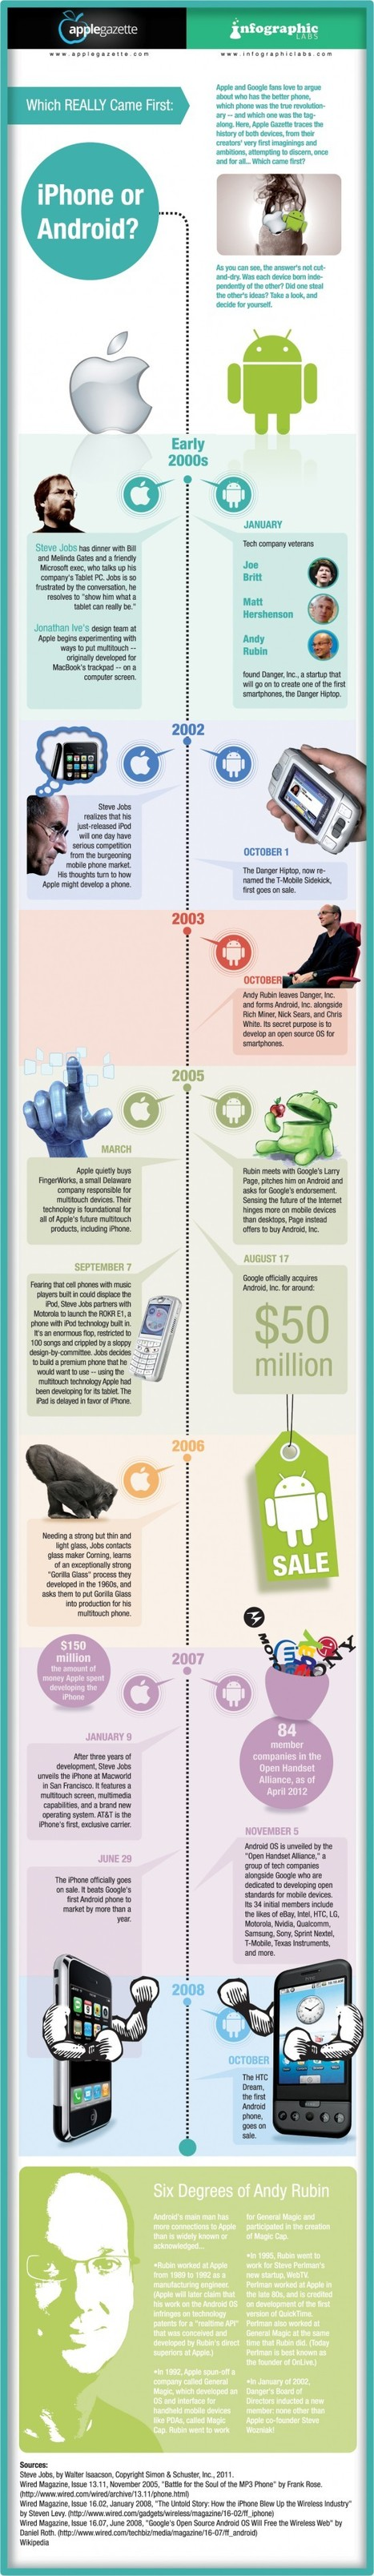 Which Mobile Platform you Prefer Using: iPhone or Android? | #TRIC para los de LETRAS | Scoop.it